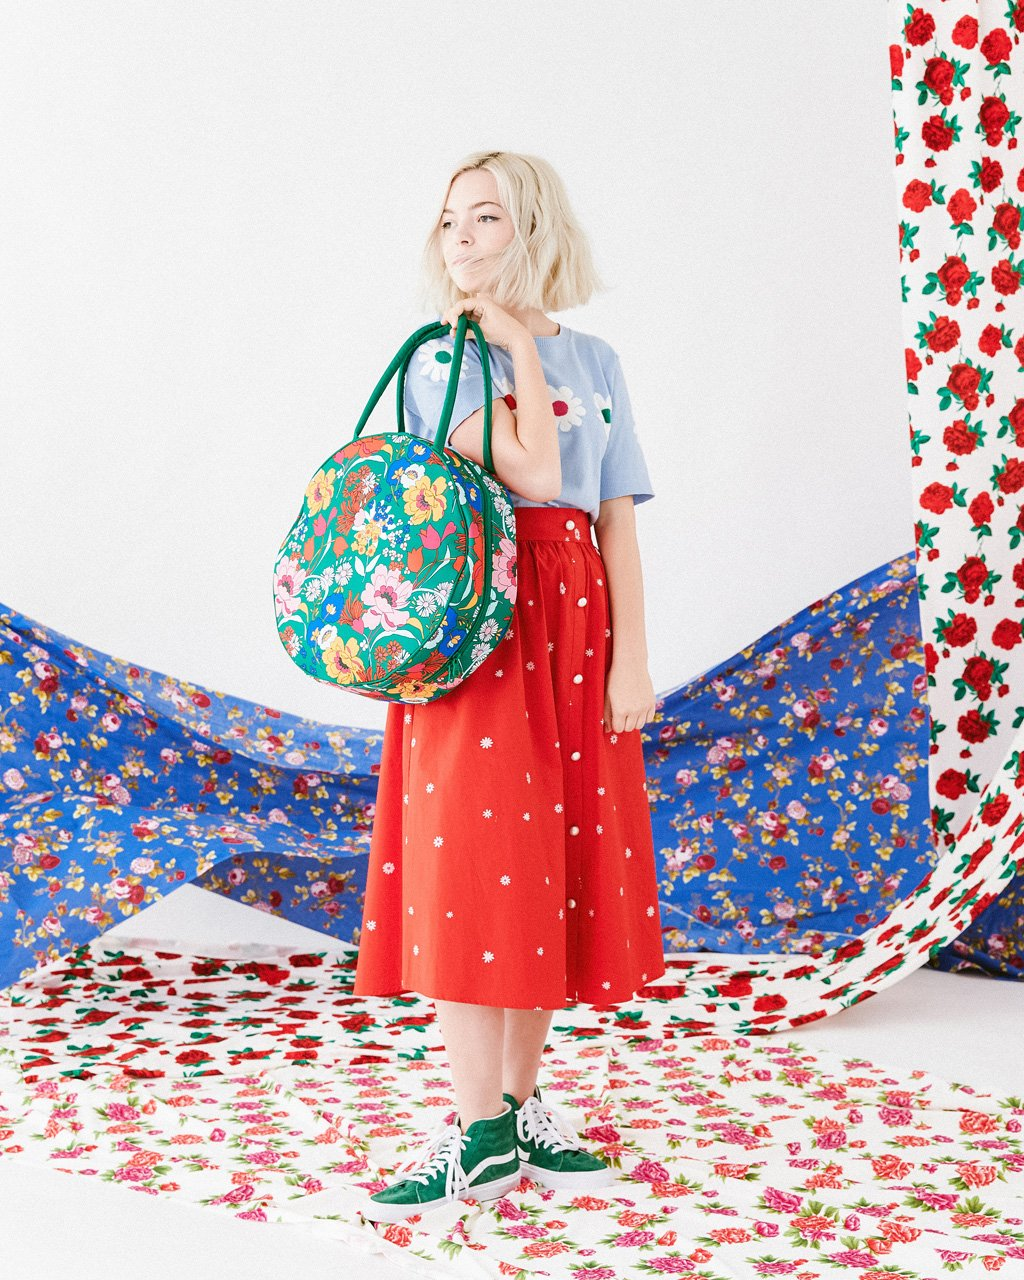 model wearing nutmeg daisy skirt with short sleeve daisy sweater holding emerald super bloom cooler bag